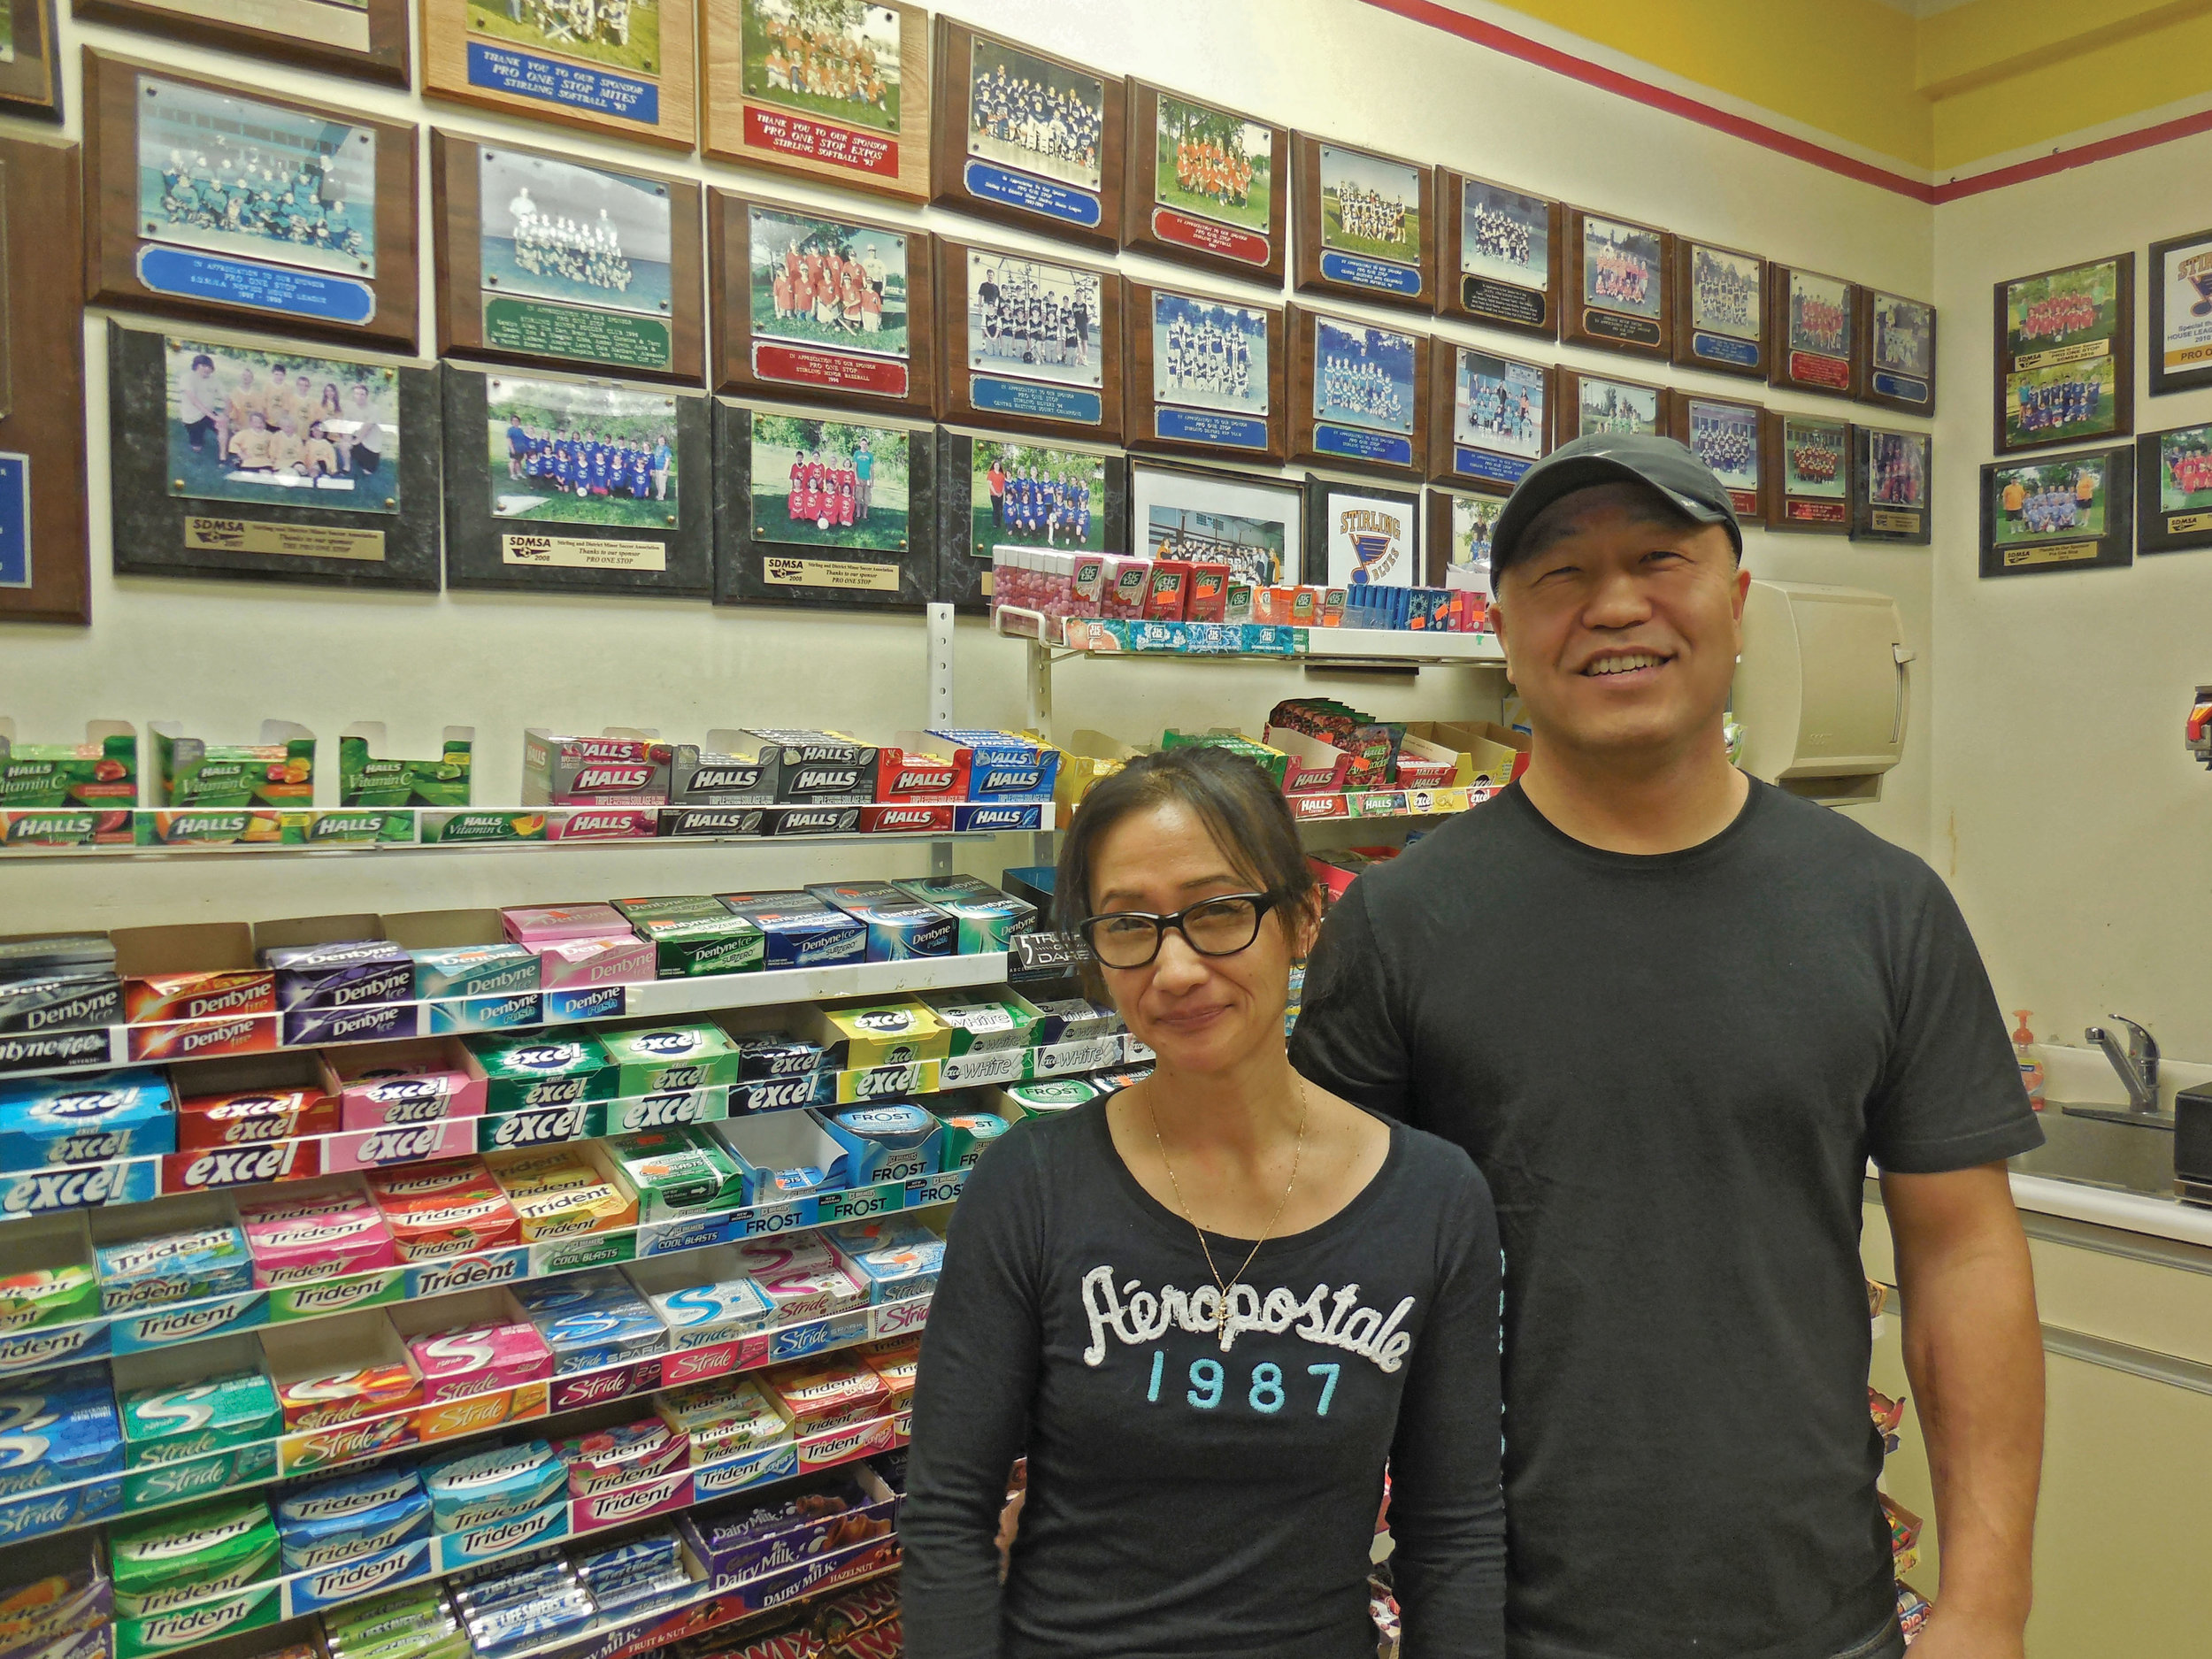 Current Pro One Stop proprietors Julie and Min Yoo stand in front of the photo wall, showing off the many local teams and events the family has proudly supported in Stirling.